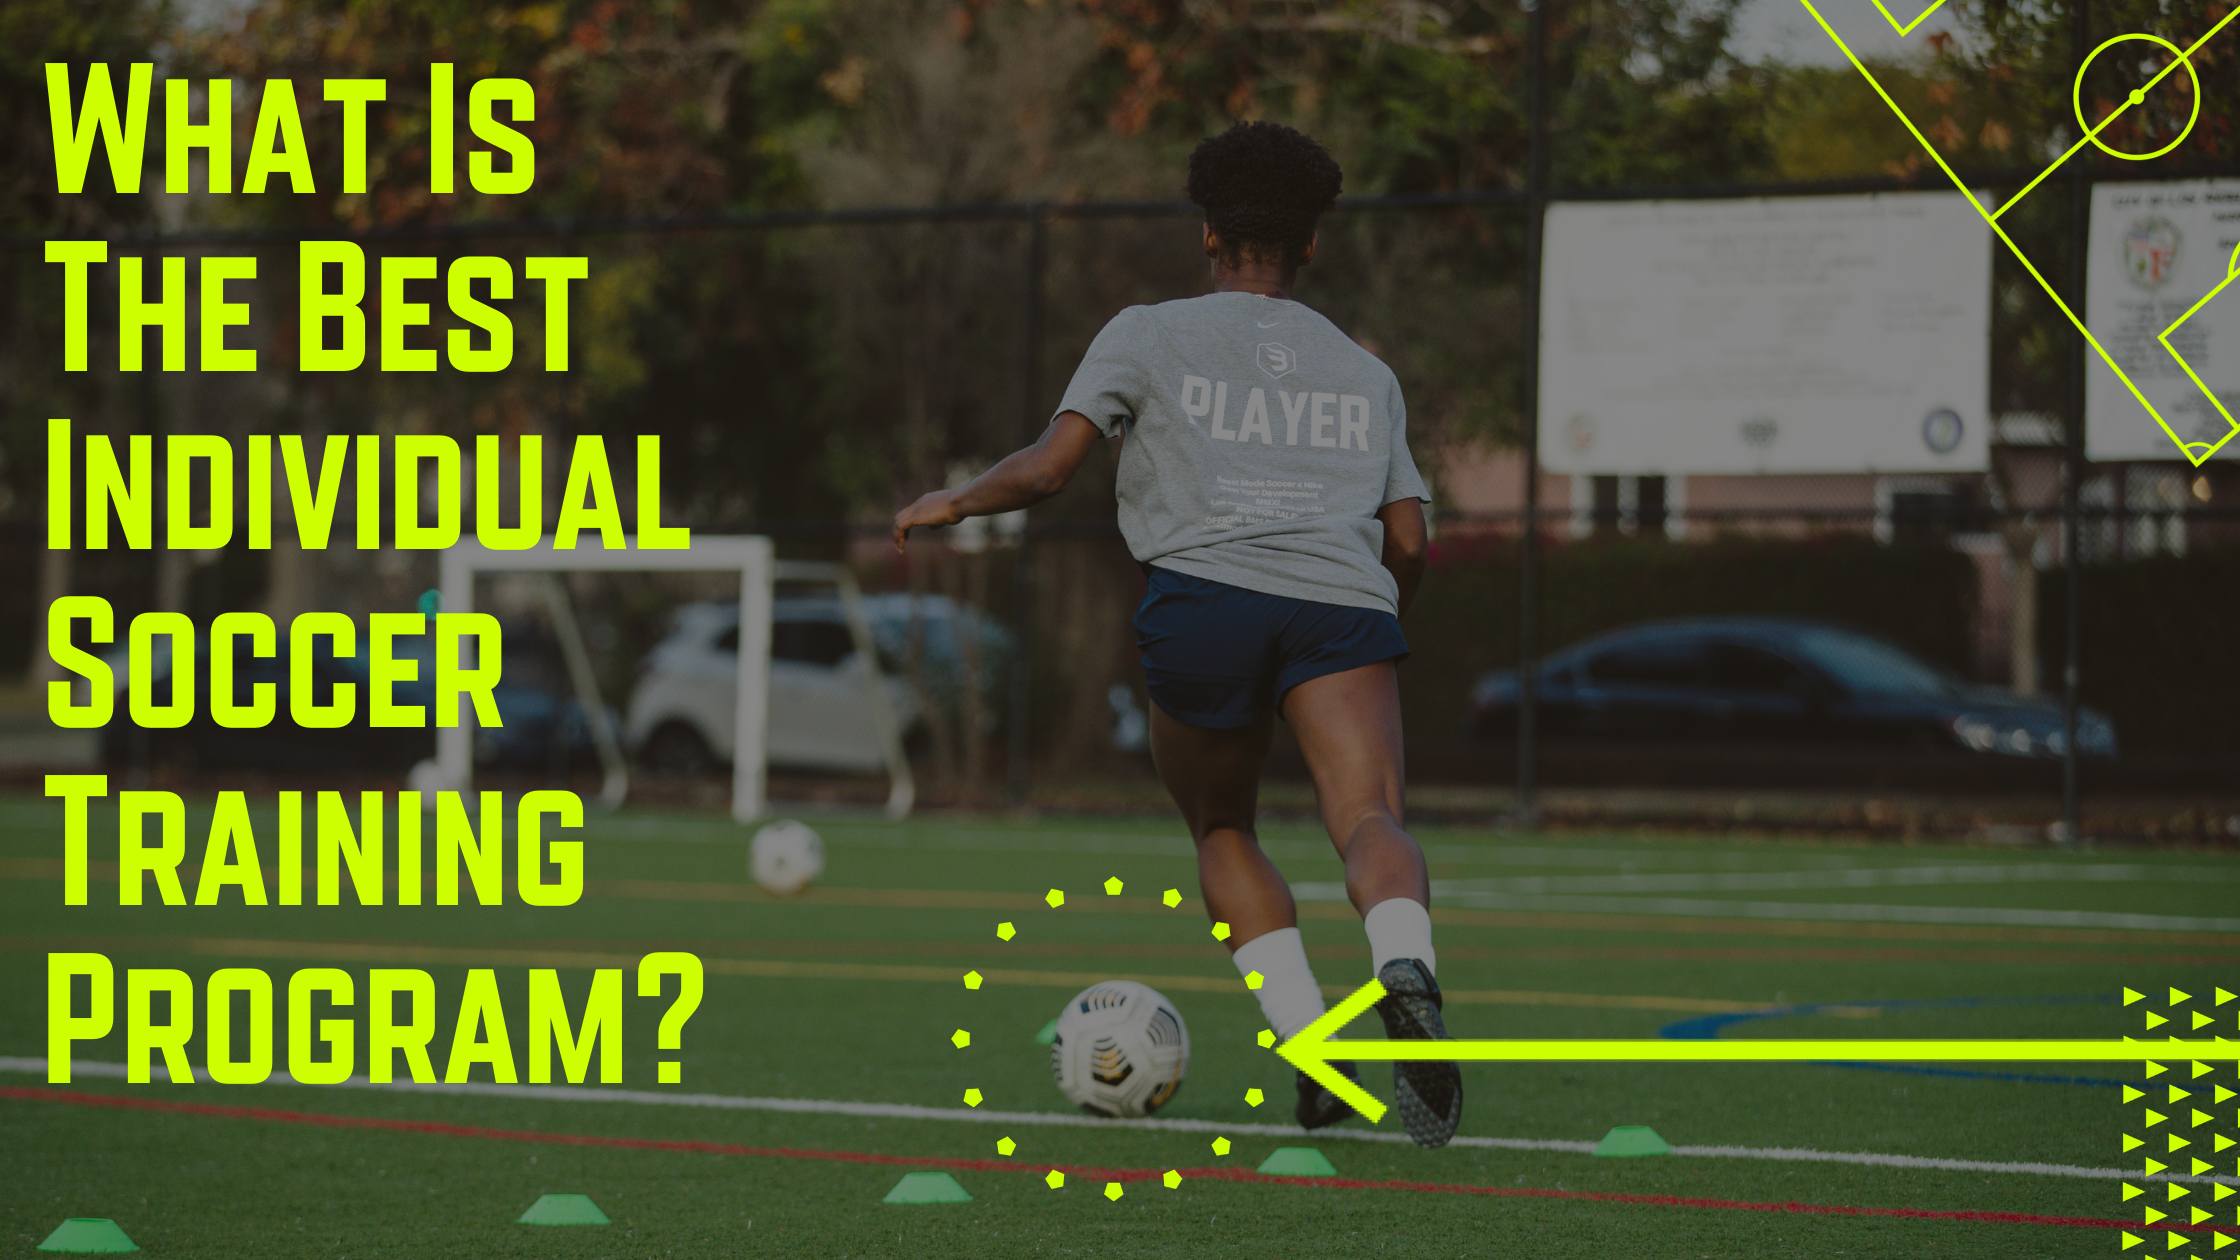 What is the best individual soccer training program?